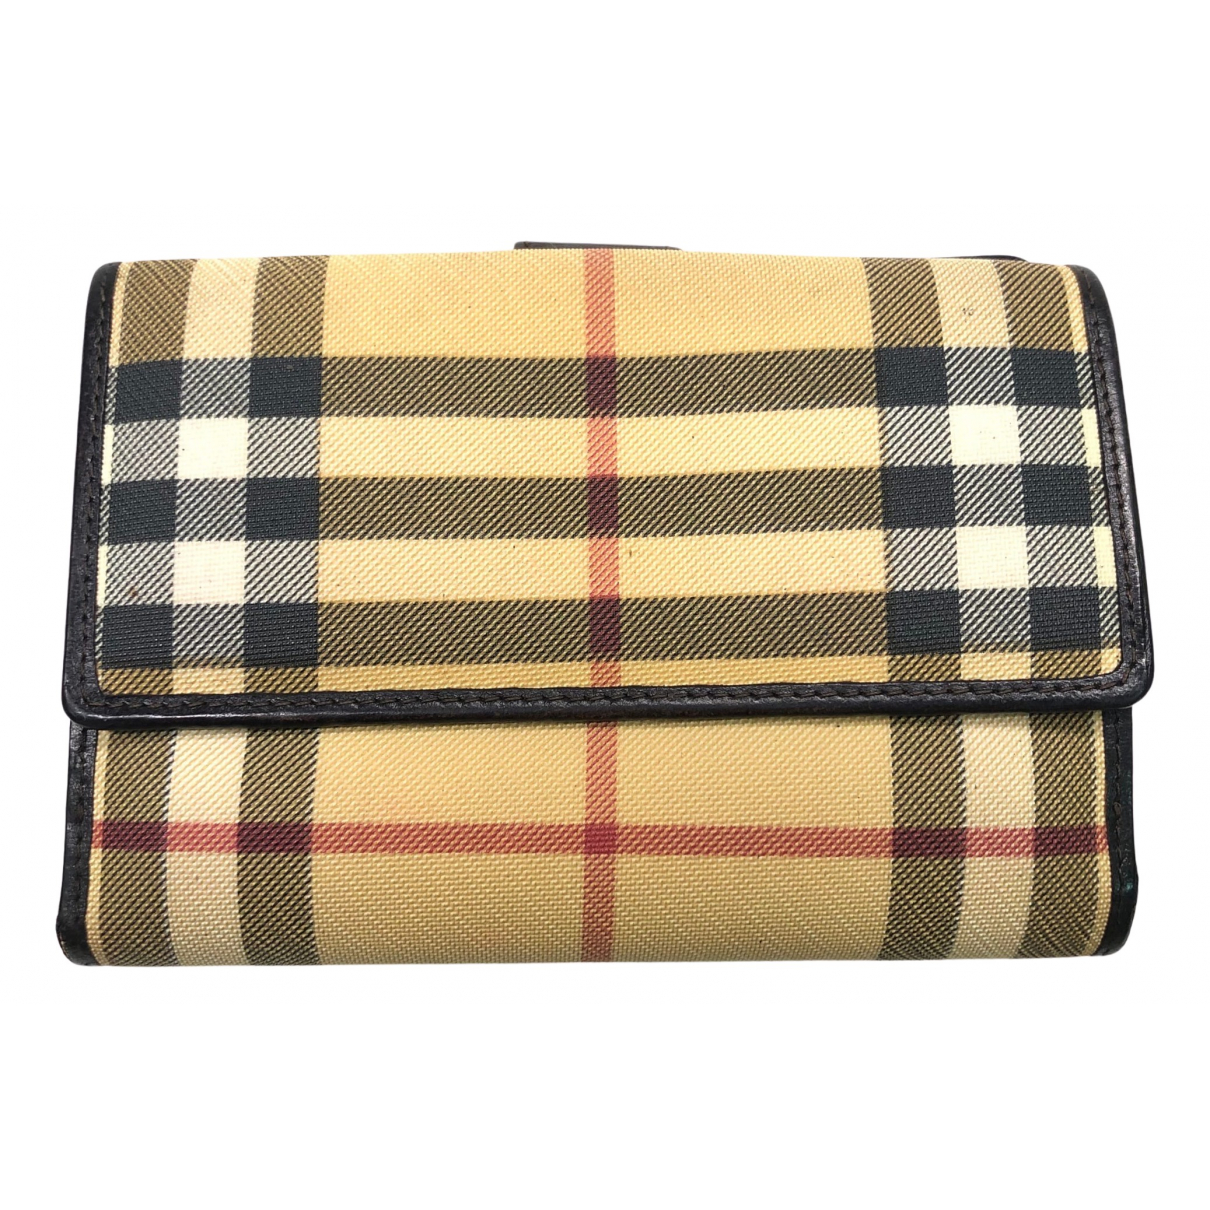 Burberry N Beige Cloth wallet for Women N